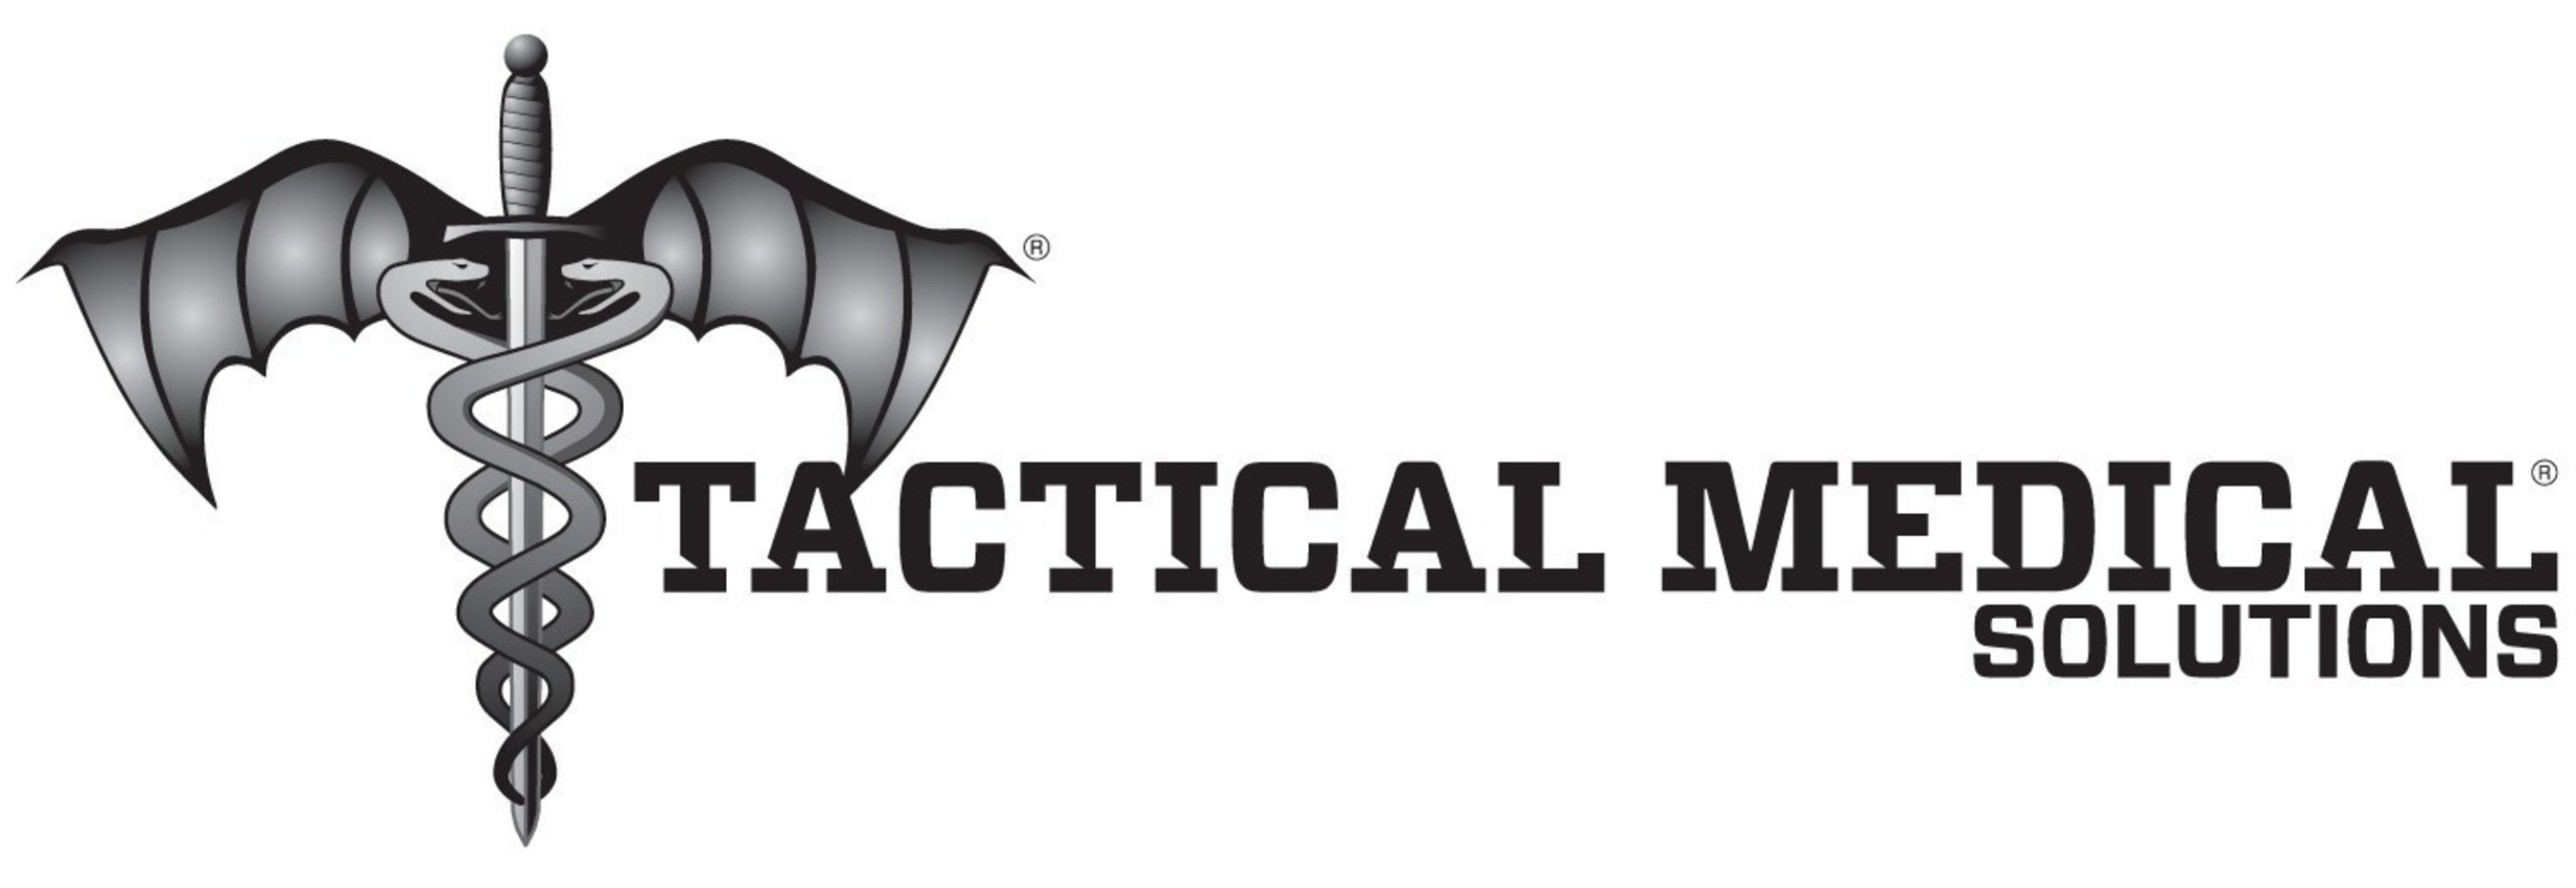 Tactical Medical Solutions Inc. Because your equipment shouldn't be a compromise.